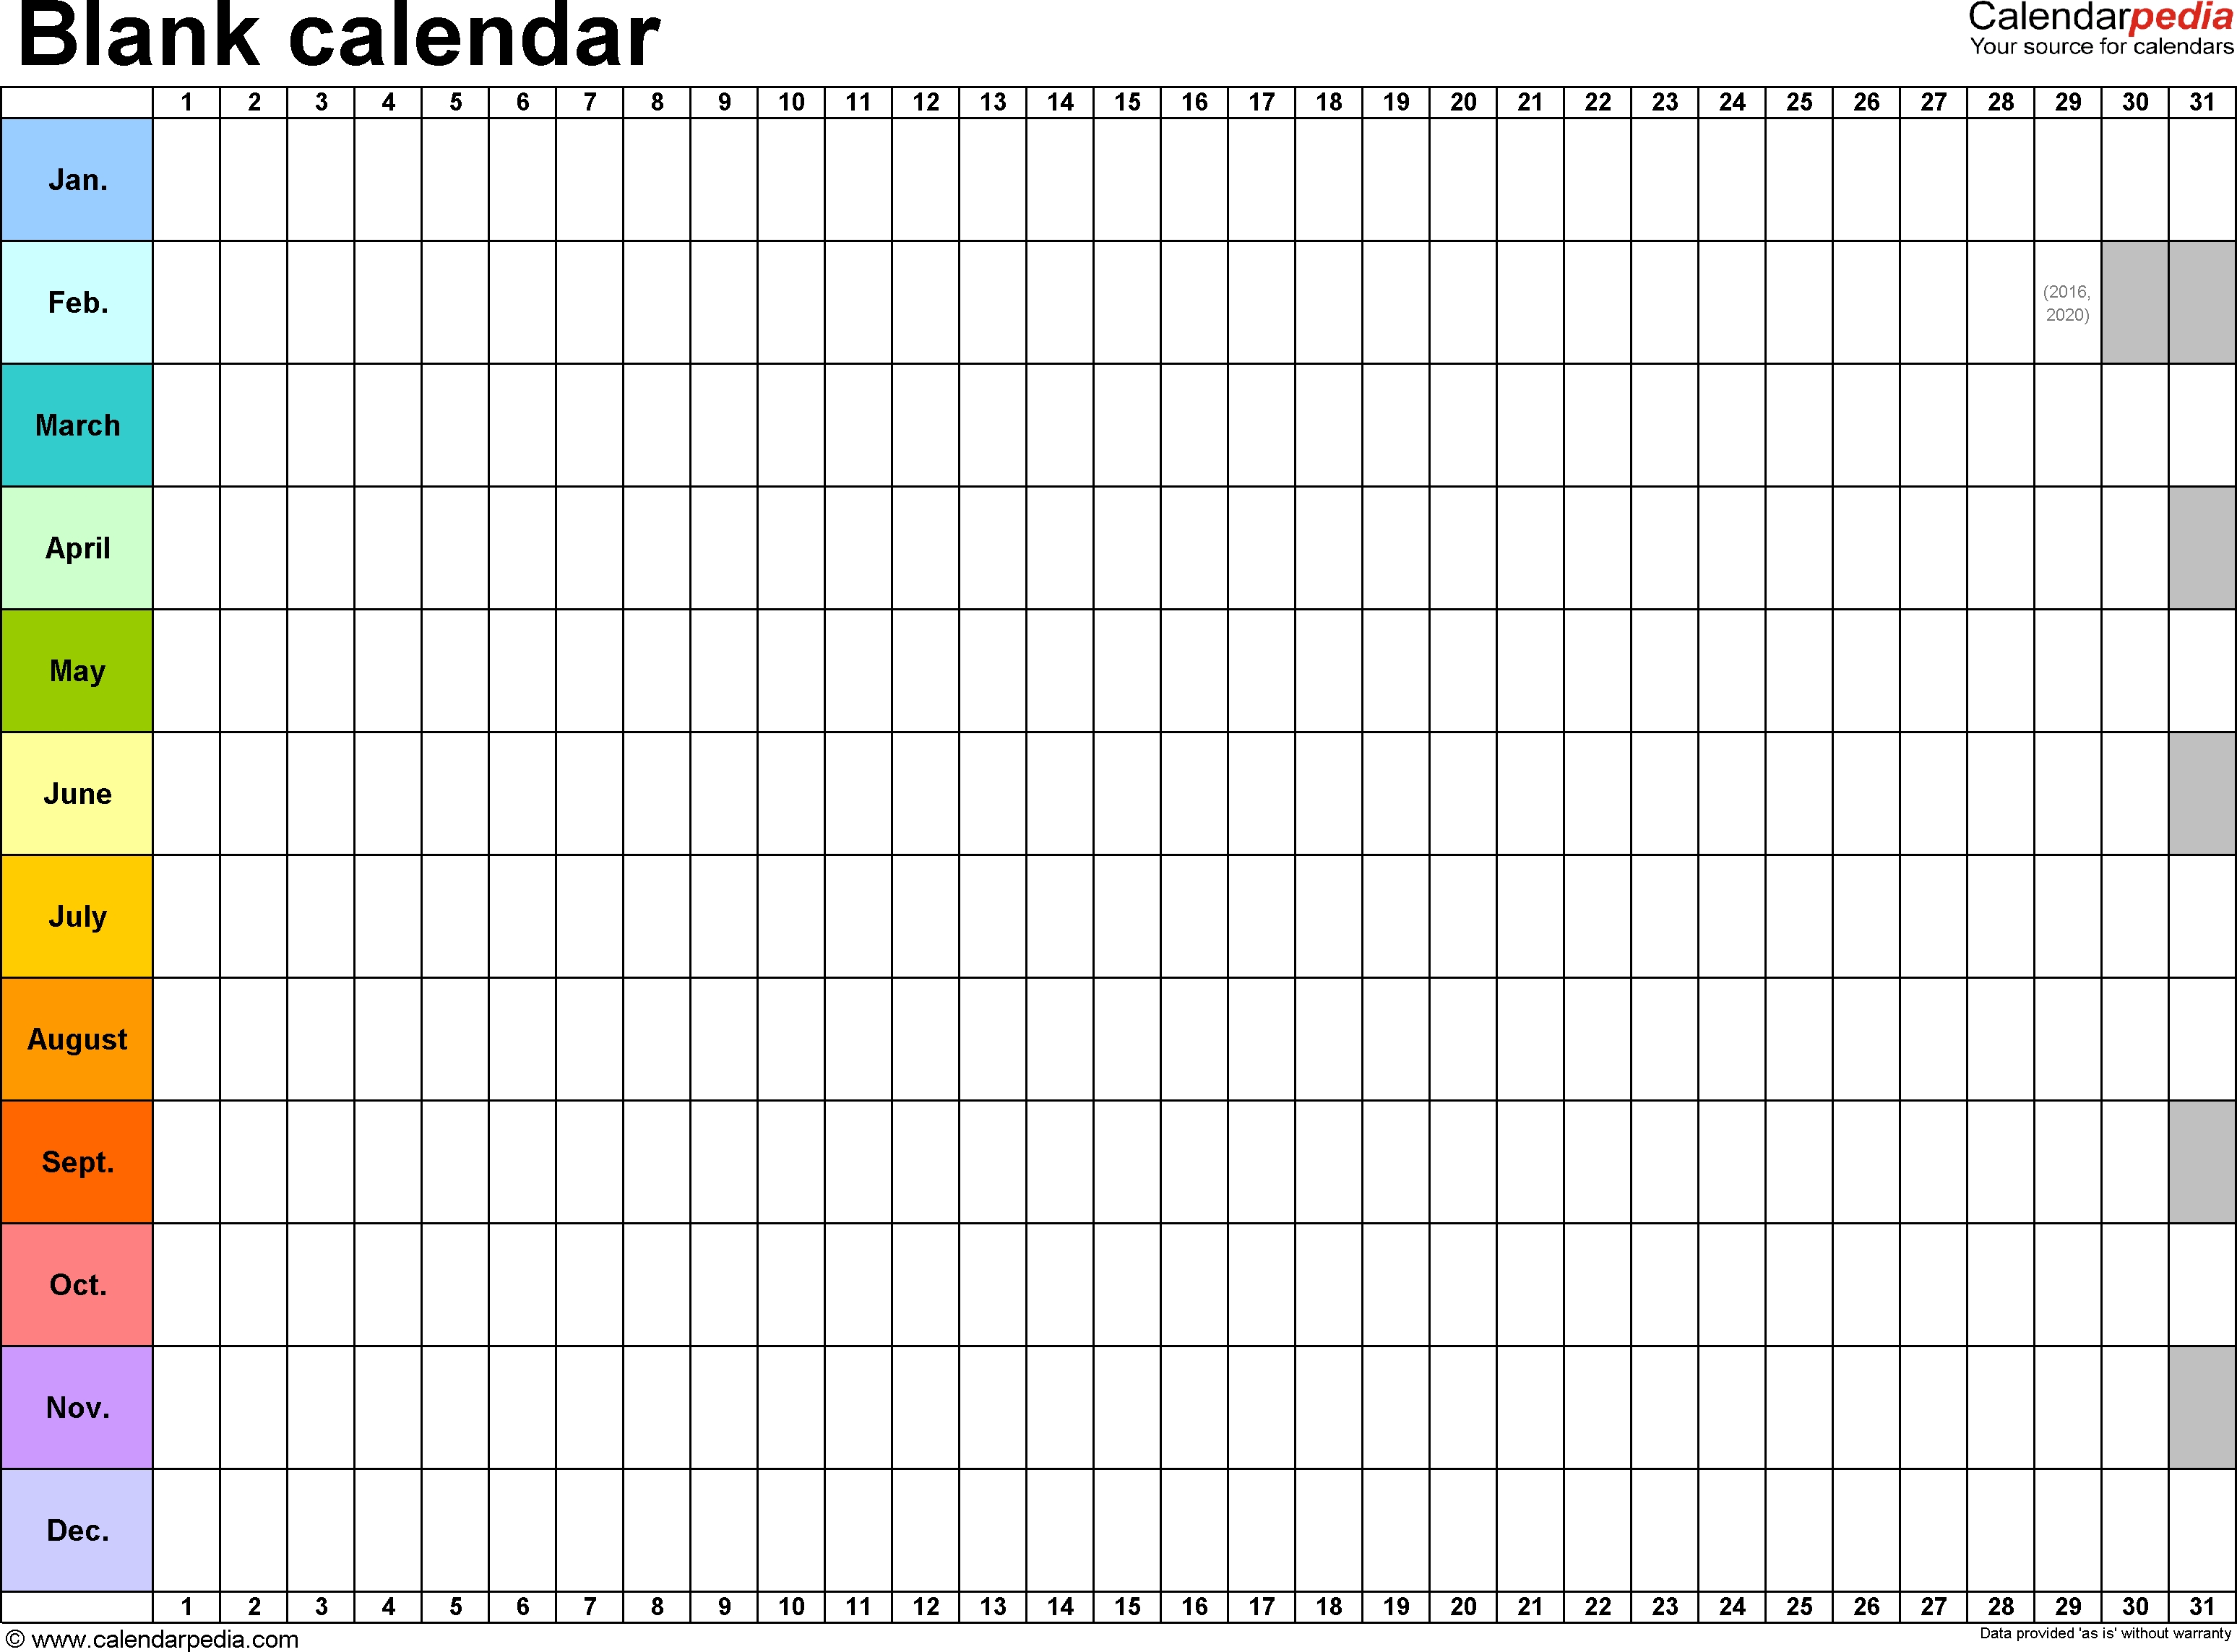 Blank Calendar - 9 Free Printable Microsoft Word Templates intended for Blank Fill In Calendar Templates